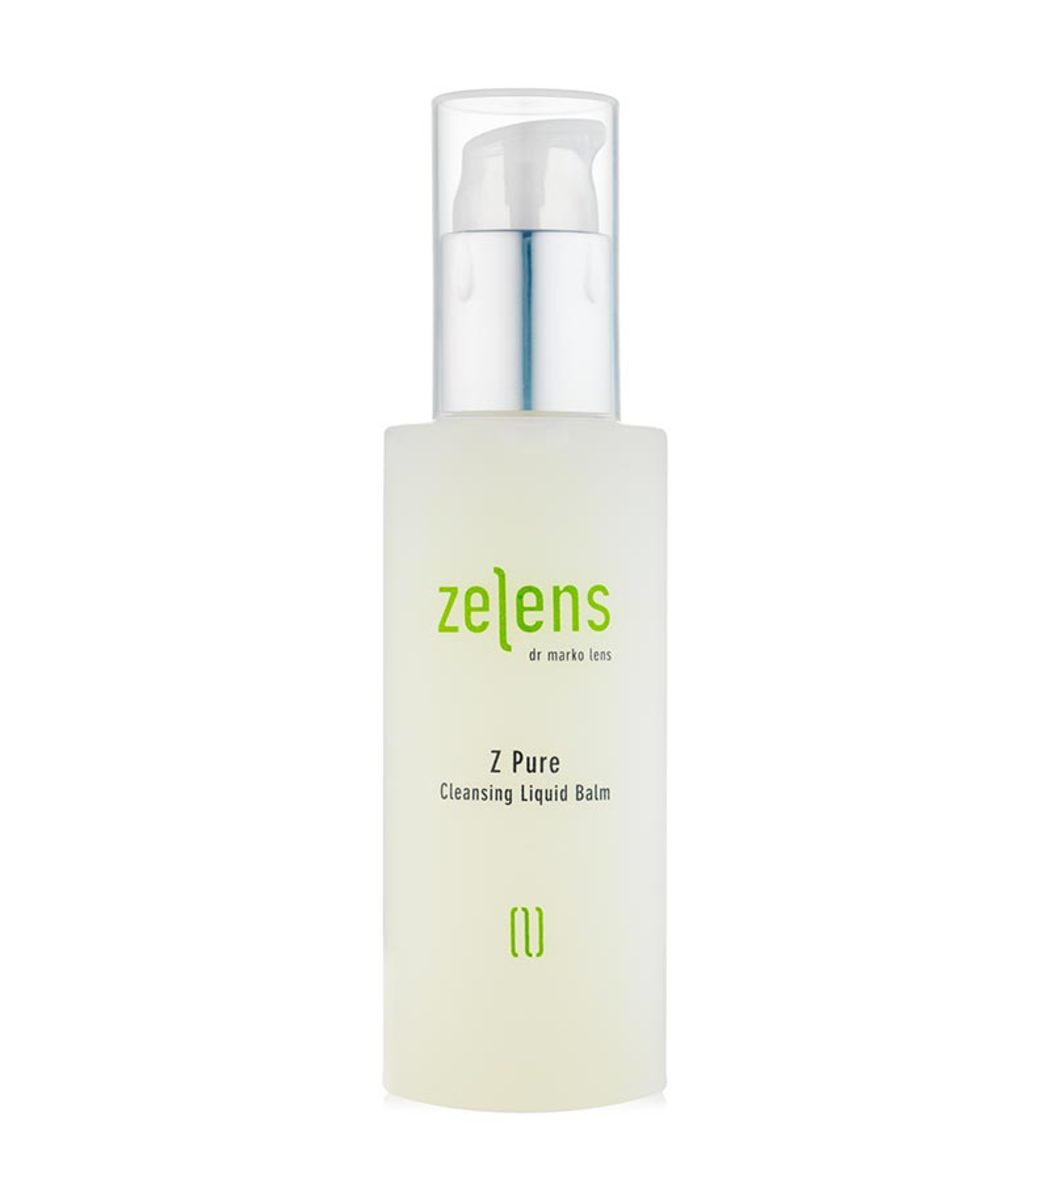 Zelens Z Pure Cleansing Liquid Balm